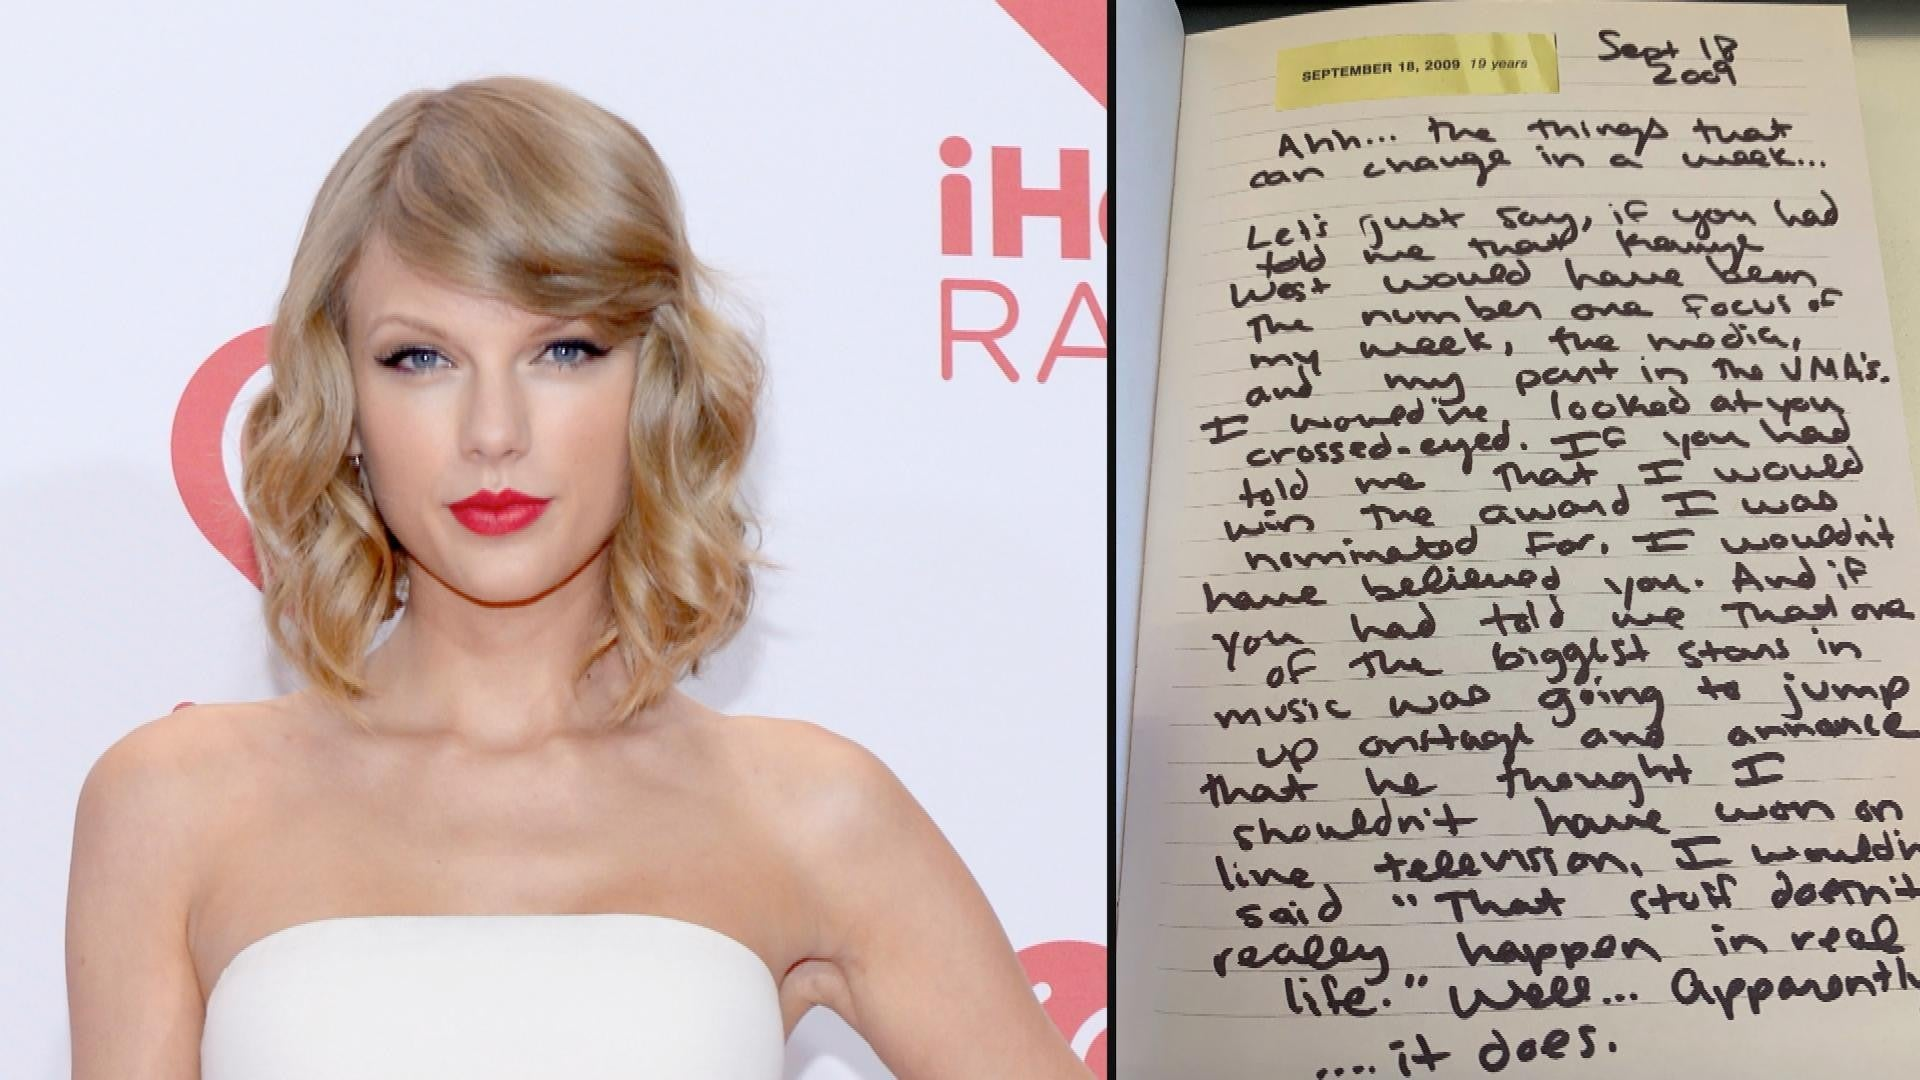 Taylor Swift Releases Diary Entries With Lover Album Here Are The Biggest Bombshells Entertainment Tonight